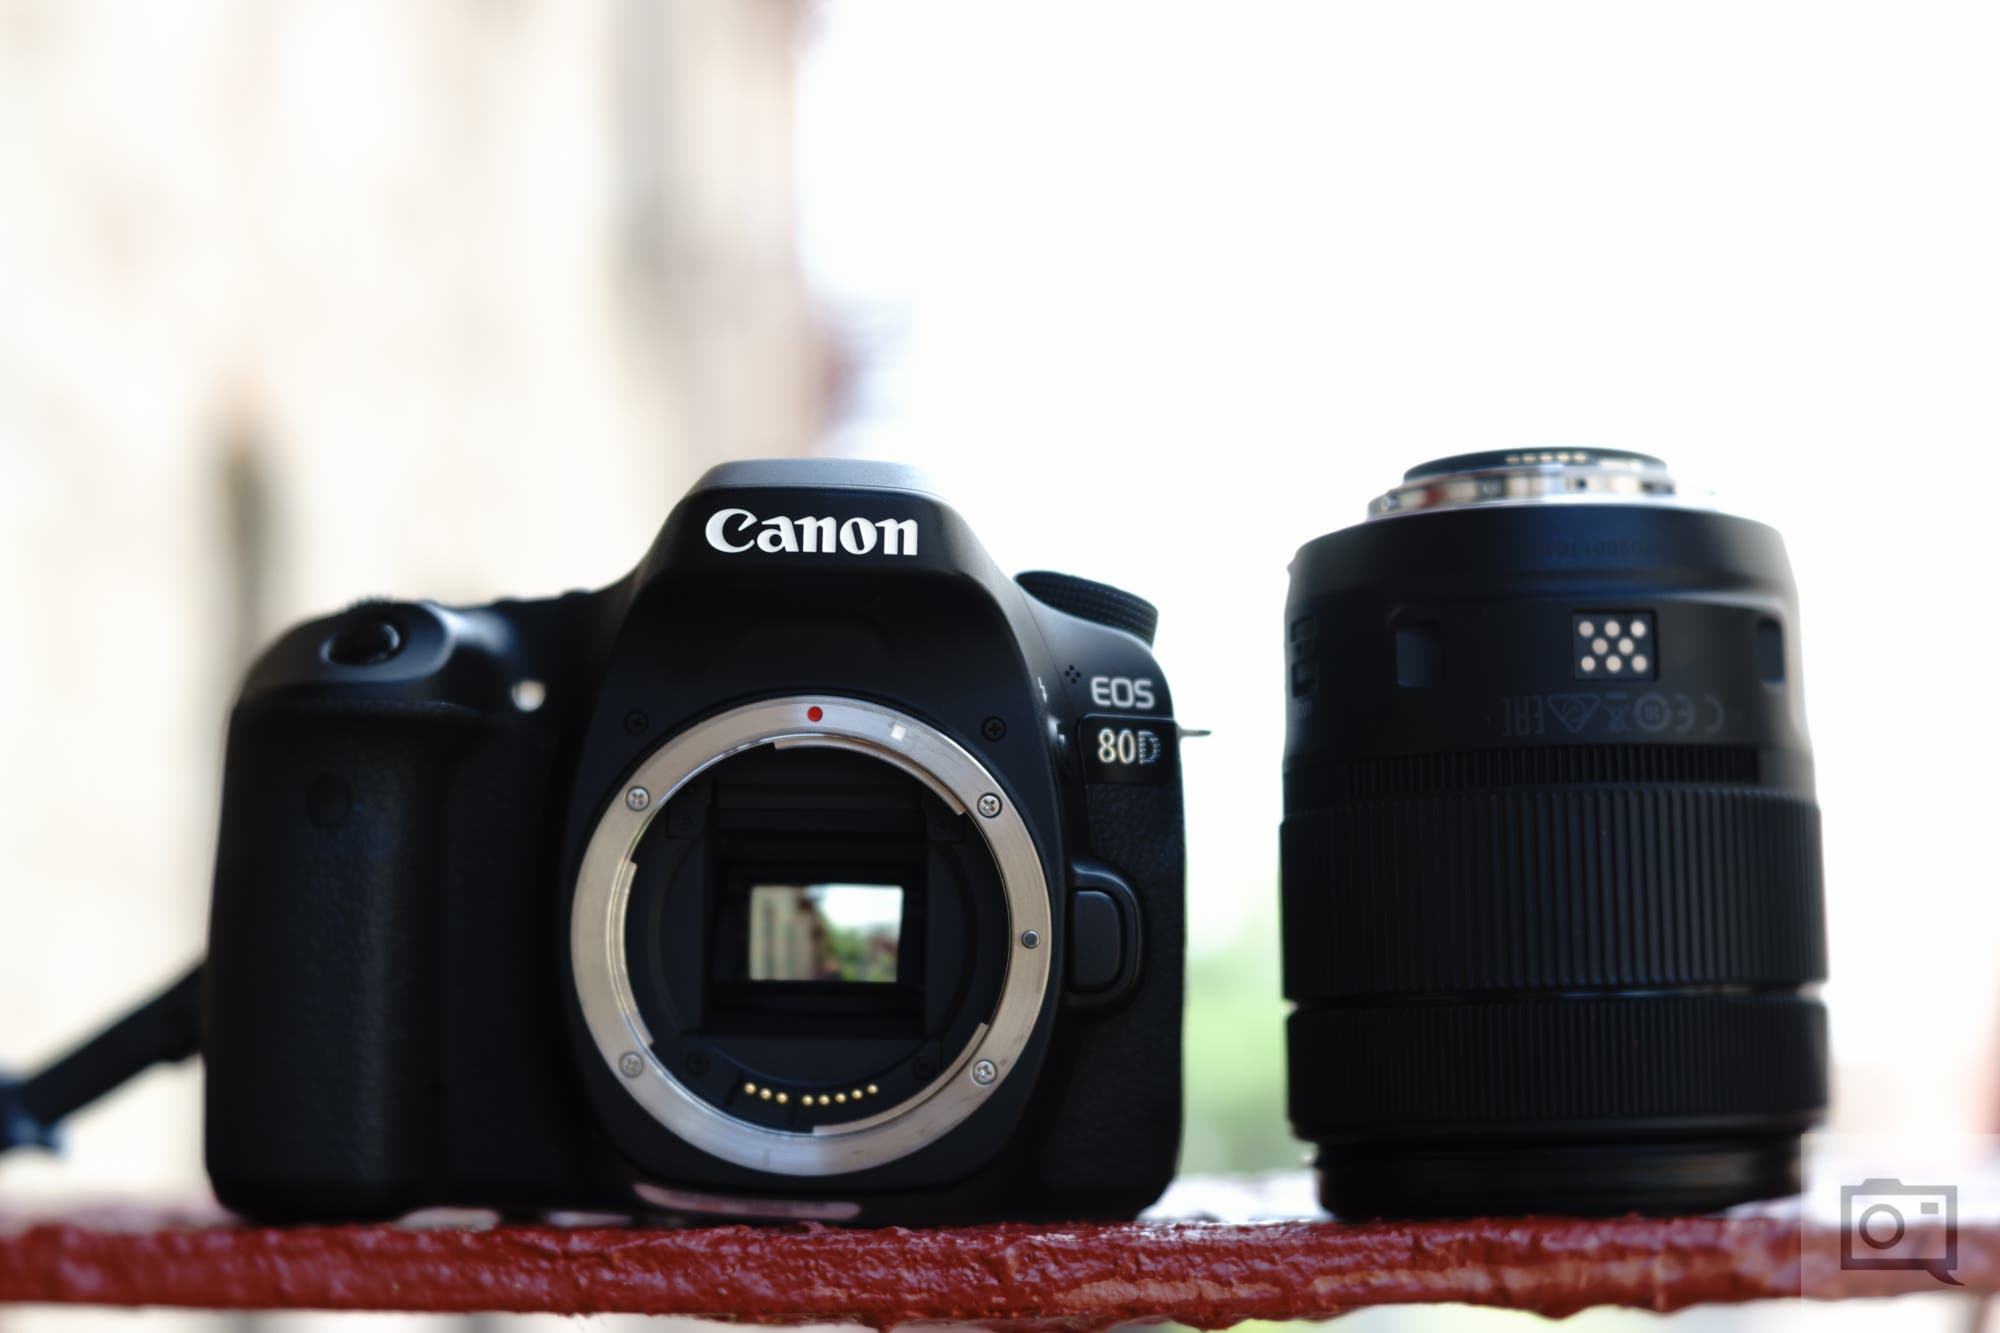 Upgrading from the Canon Rebel: A Guide on Choosing Your